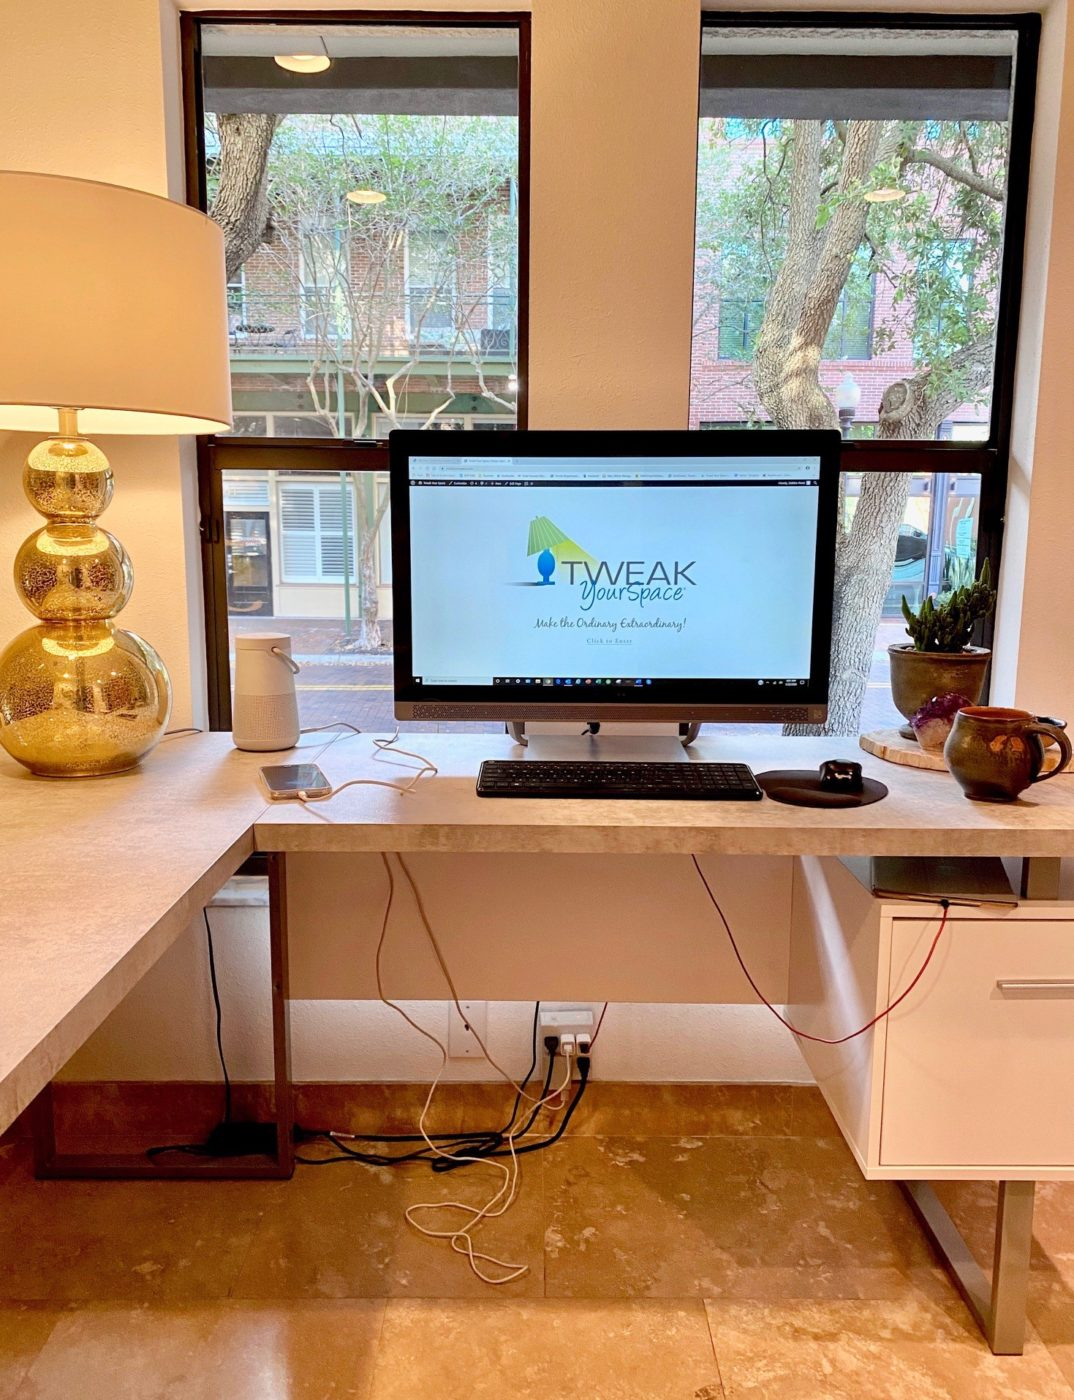 Tweak Your Space office showing a desk with cords running under and over the desk. Cord clutter doesn't make us happy.